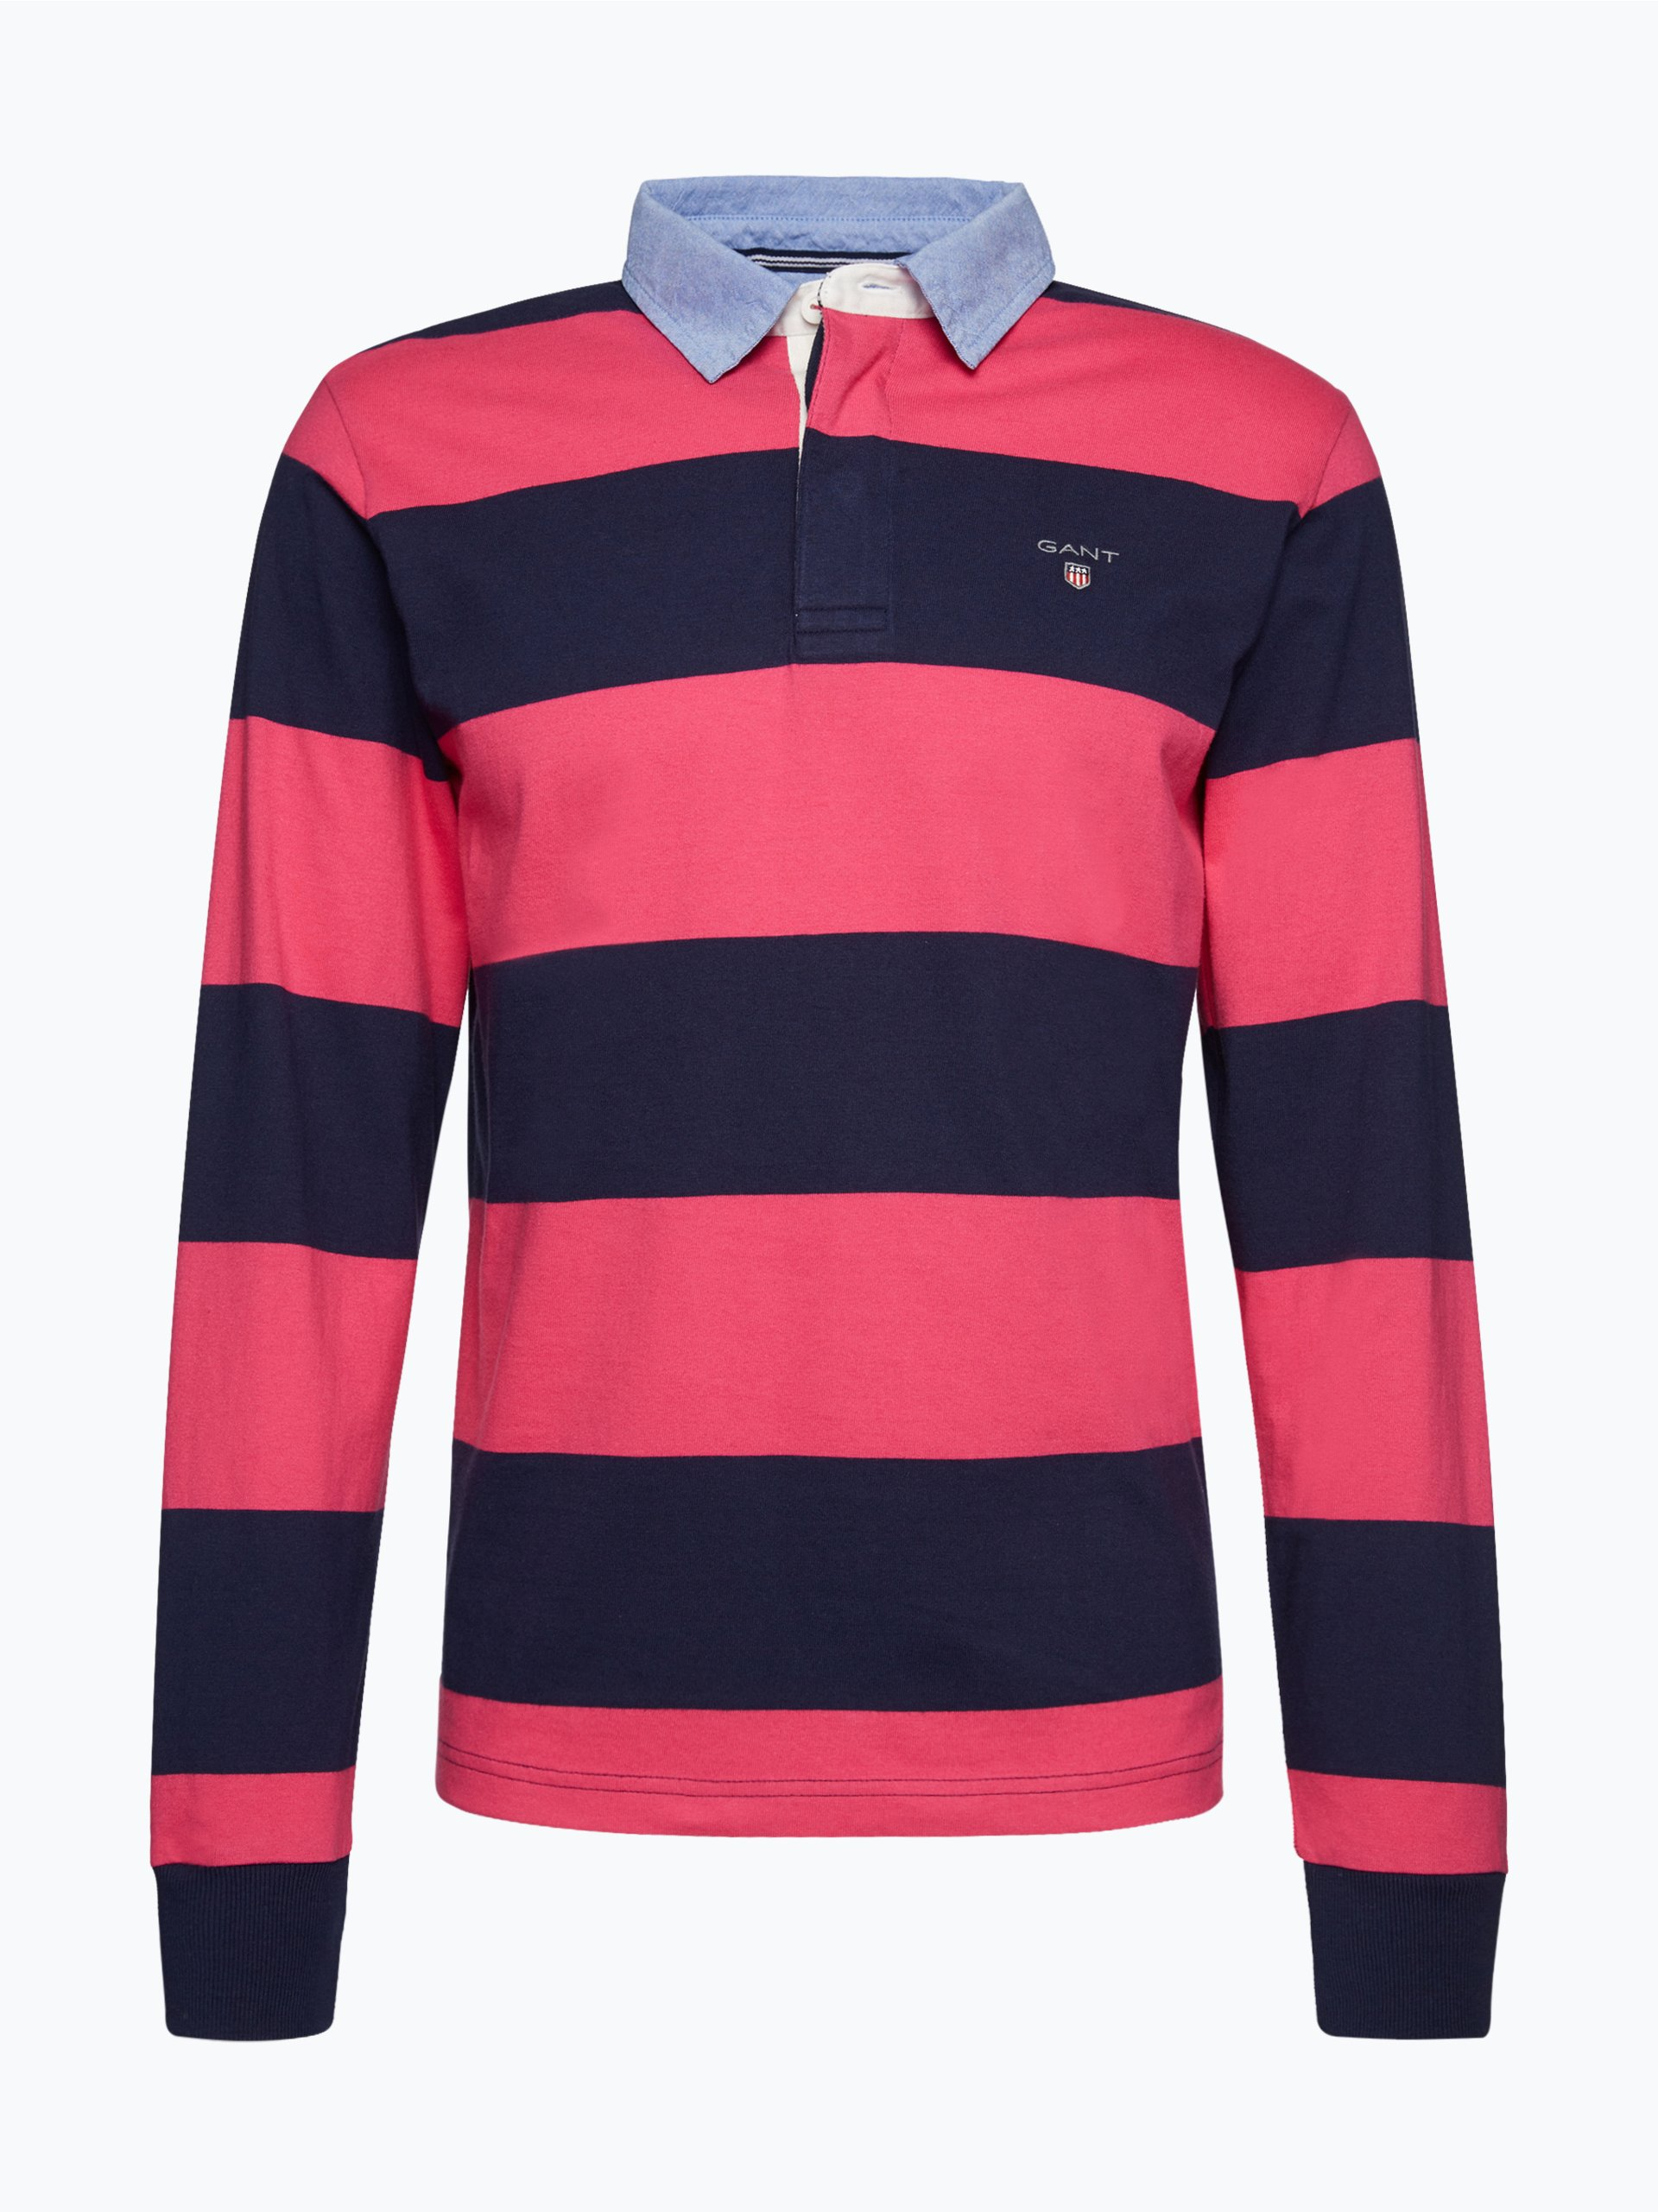 gant herren rugbyshirt pink gestreift online kaufen vangraaf com. Black Bedroom Furniture Sets. Home Design Ideas